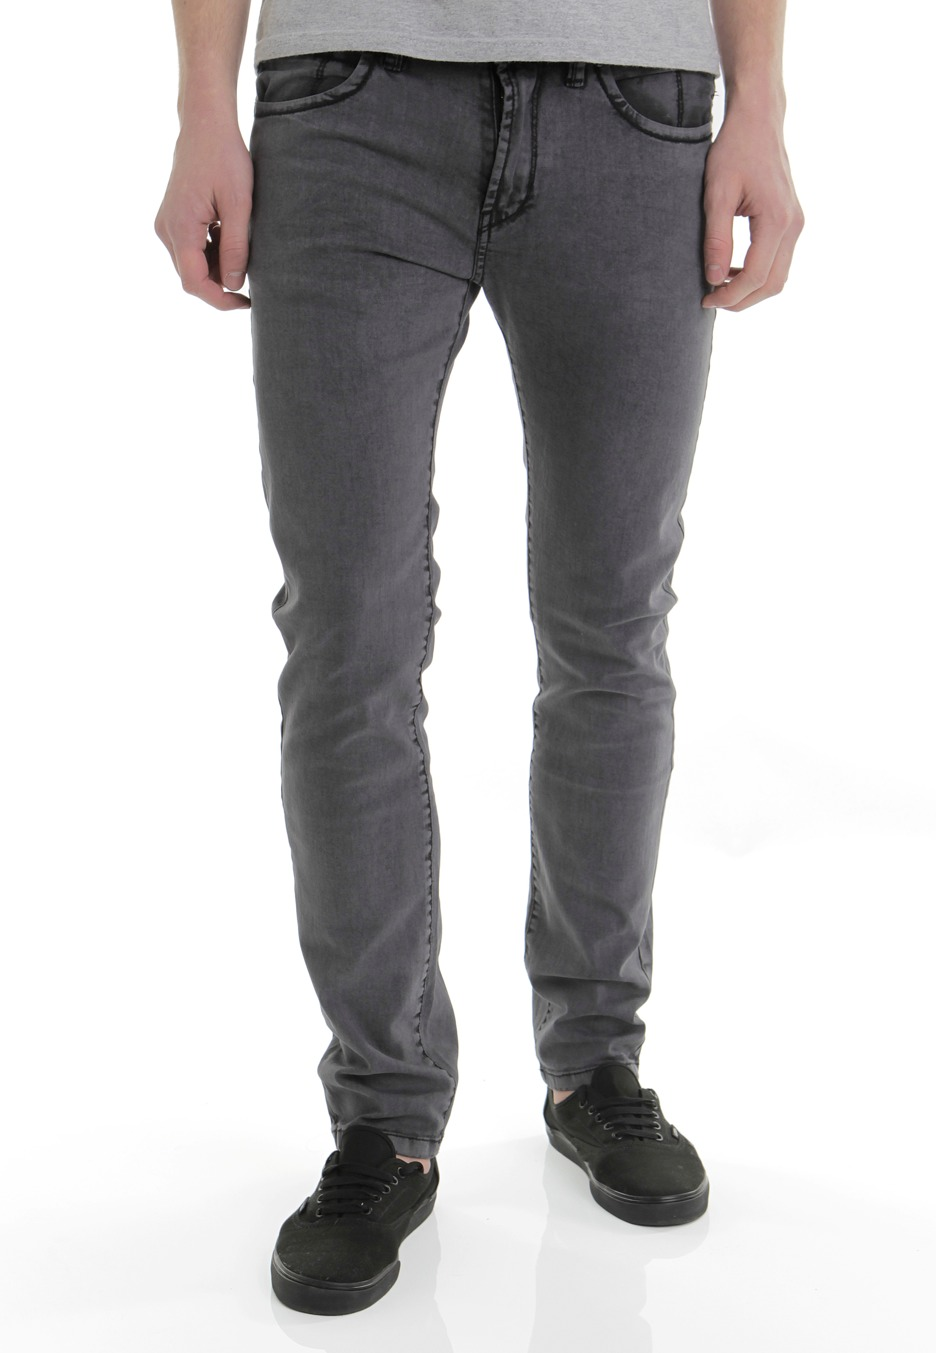 Free shipping and returns on Women's Grey Wash Jeans & Denim at qrqceh.tk